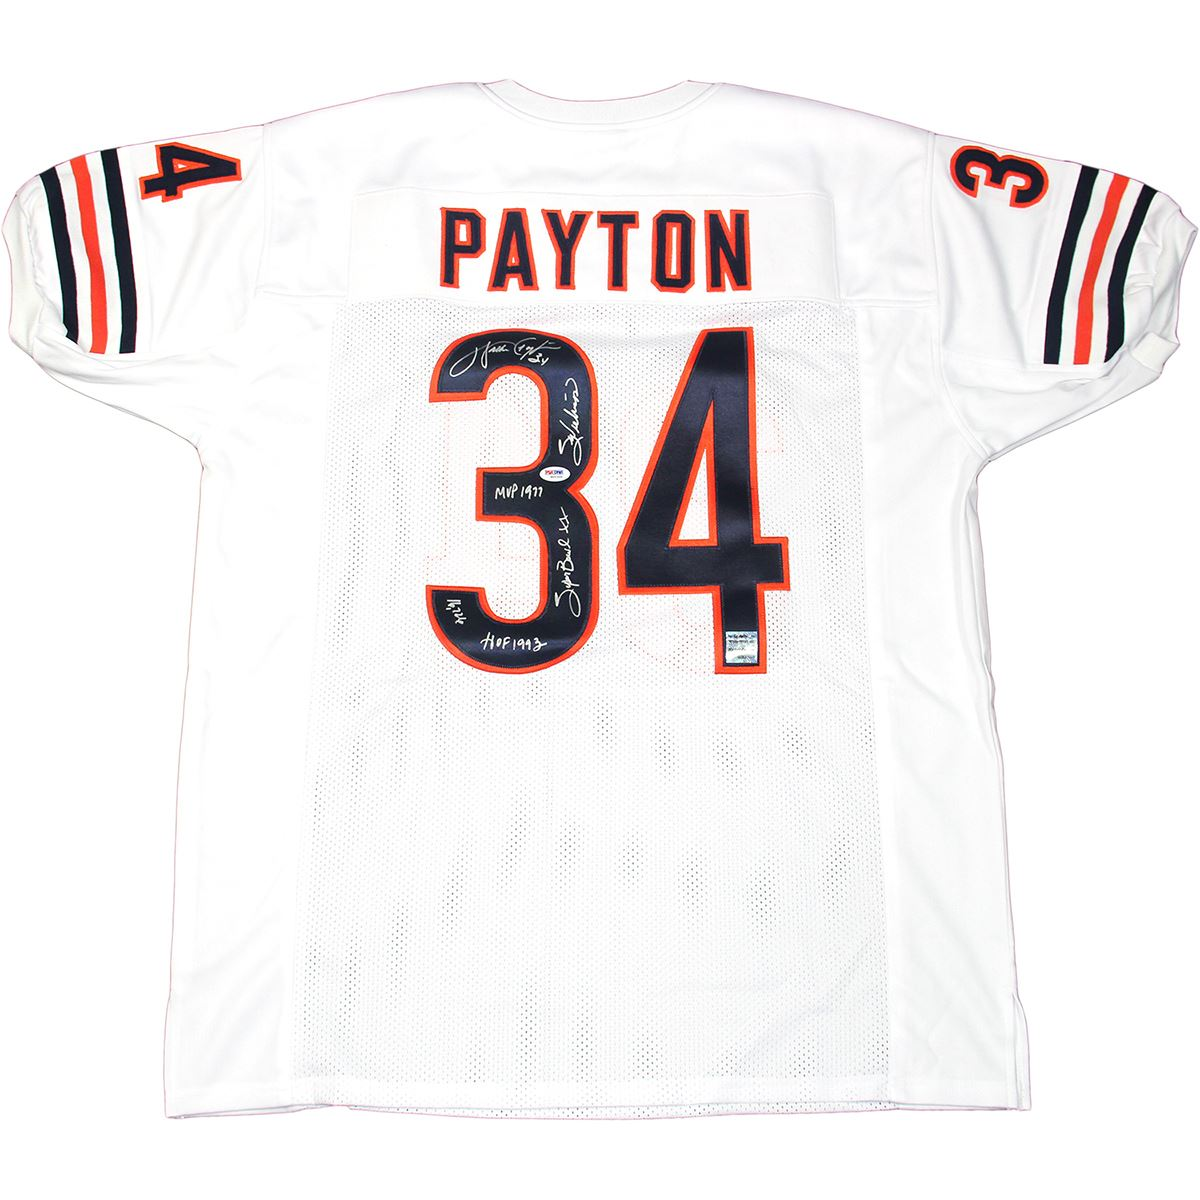 4cec4aa1 Walter Payton Signed Authentic White Chicago Bears Jersey W ...